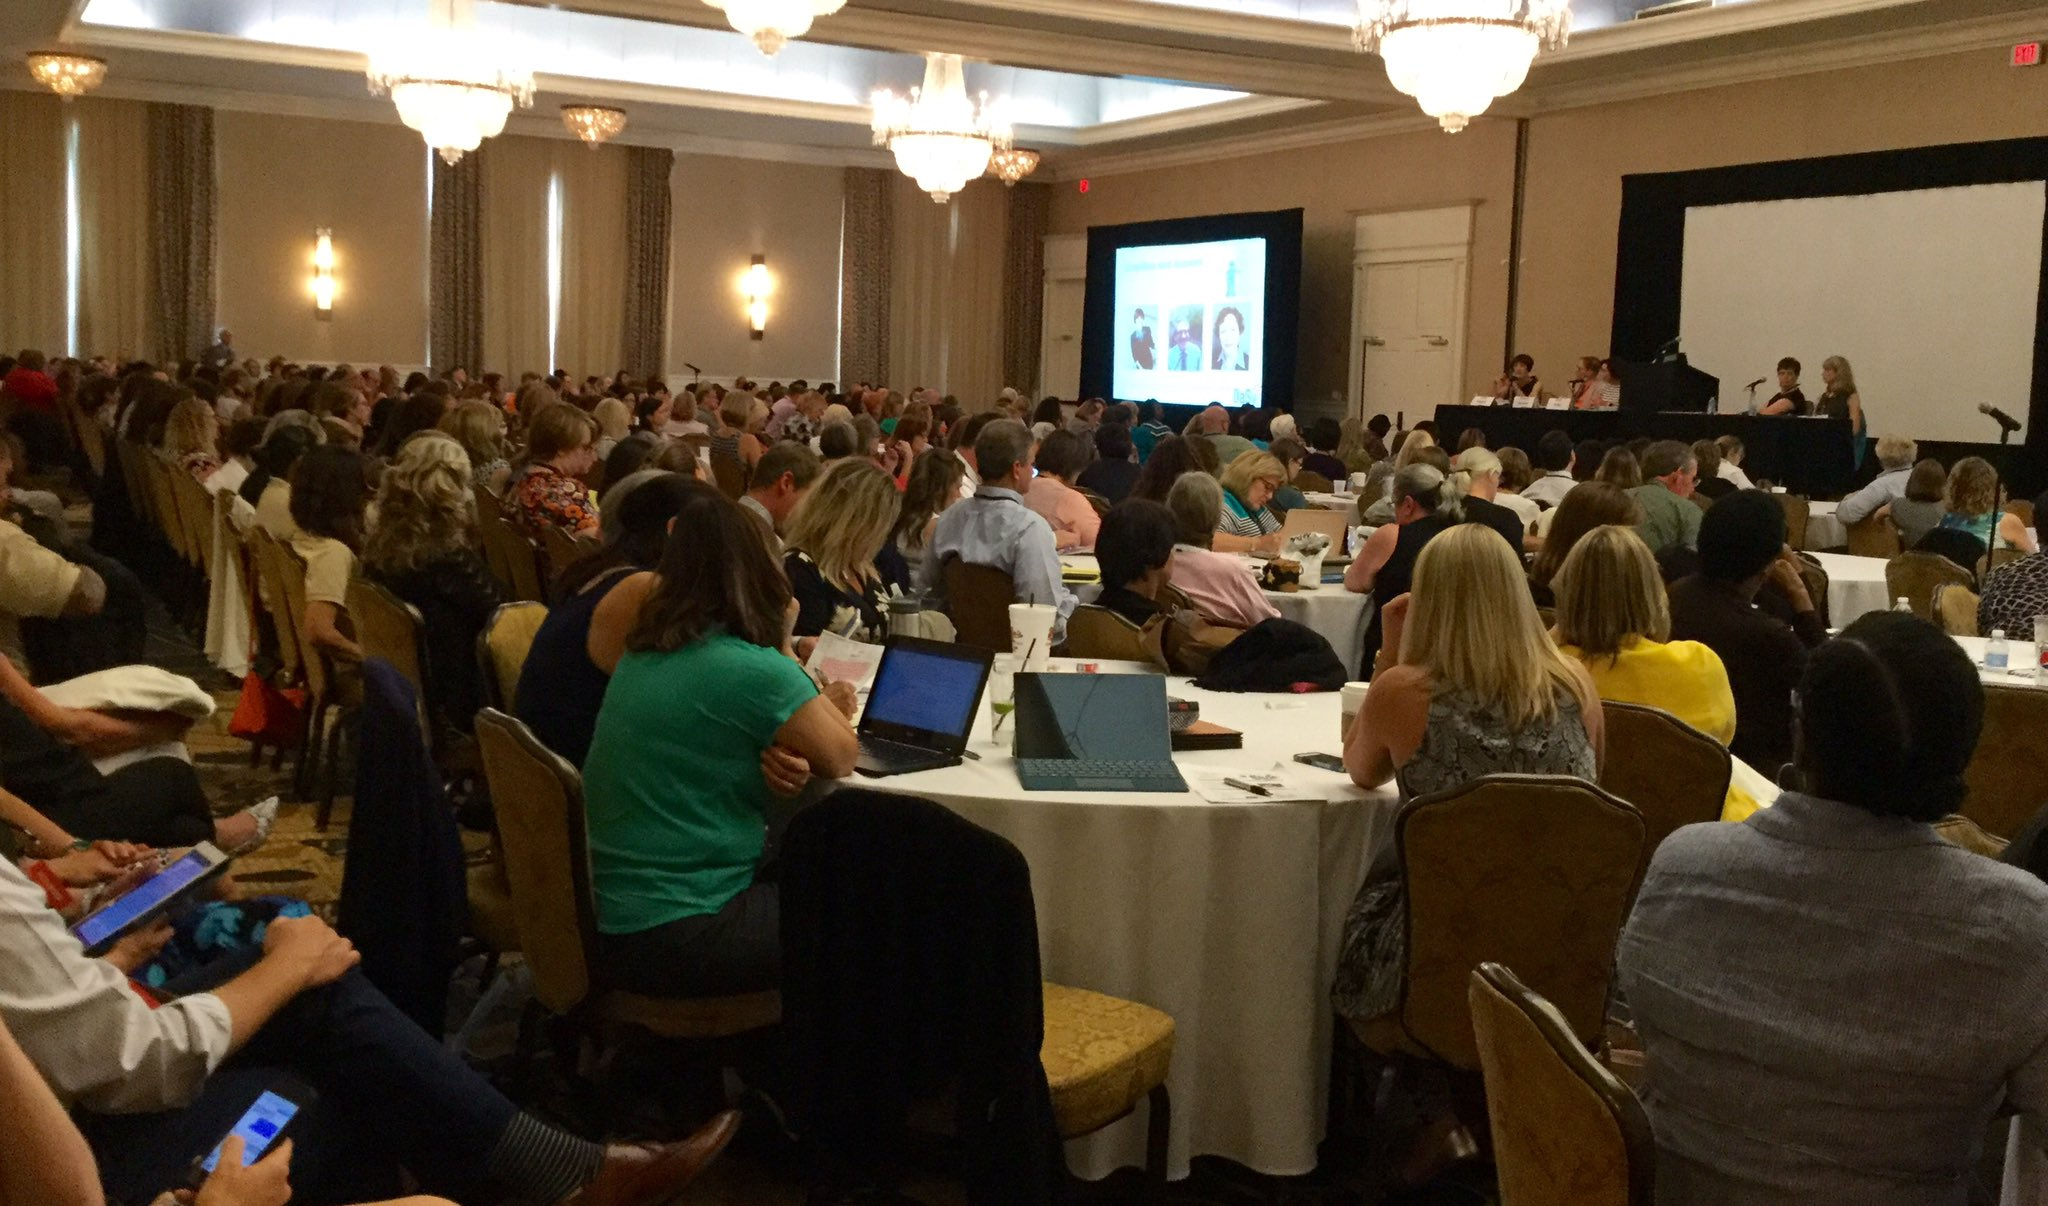 Standing room only for the @ED_Sped_Rehab and @ACFHHS Q & A session at #ECIDEA16 https://t.co/lnRXr81CBZ